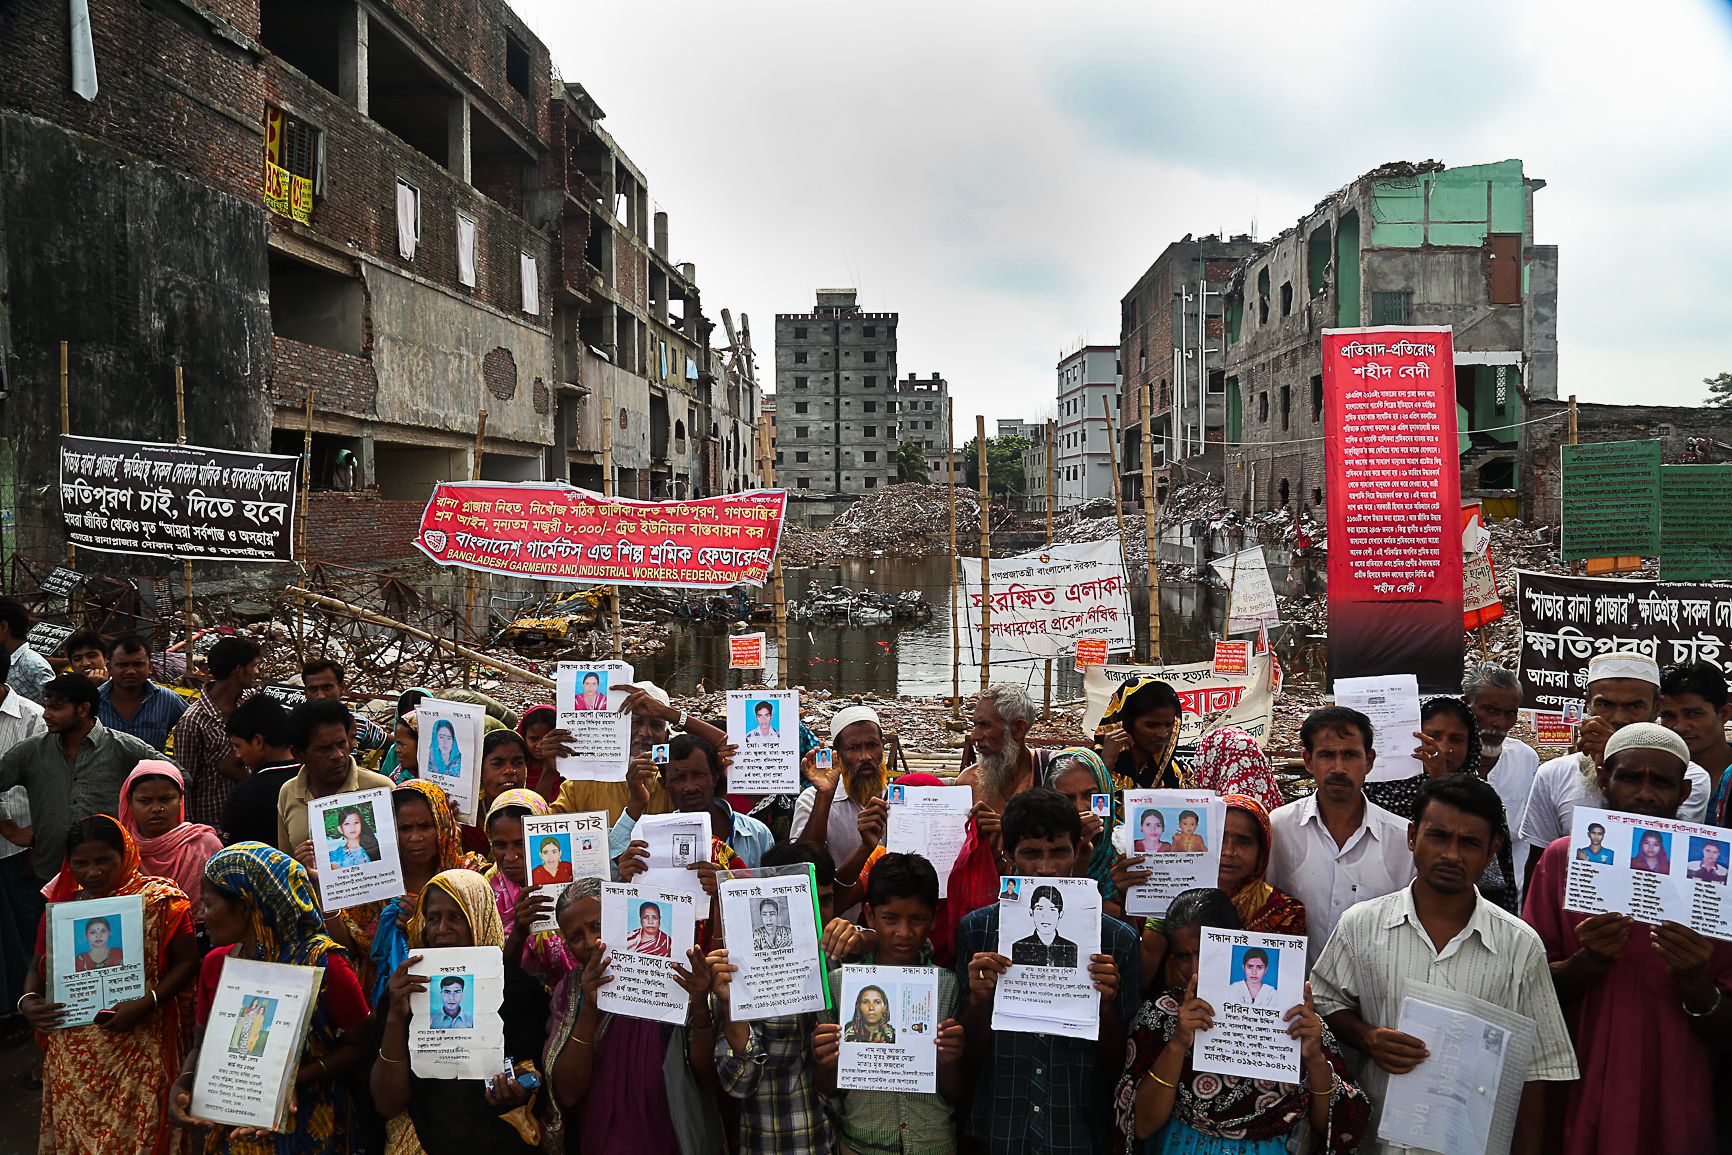 The loved ones of garment workers killed in the Rana Plaza collapse hold photos of the victims in protest (photo:  Jason Motlagh )